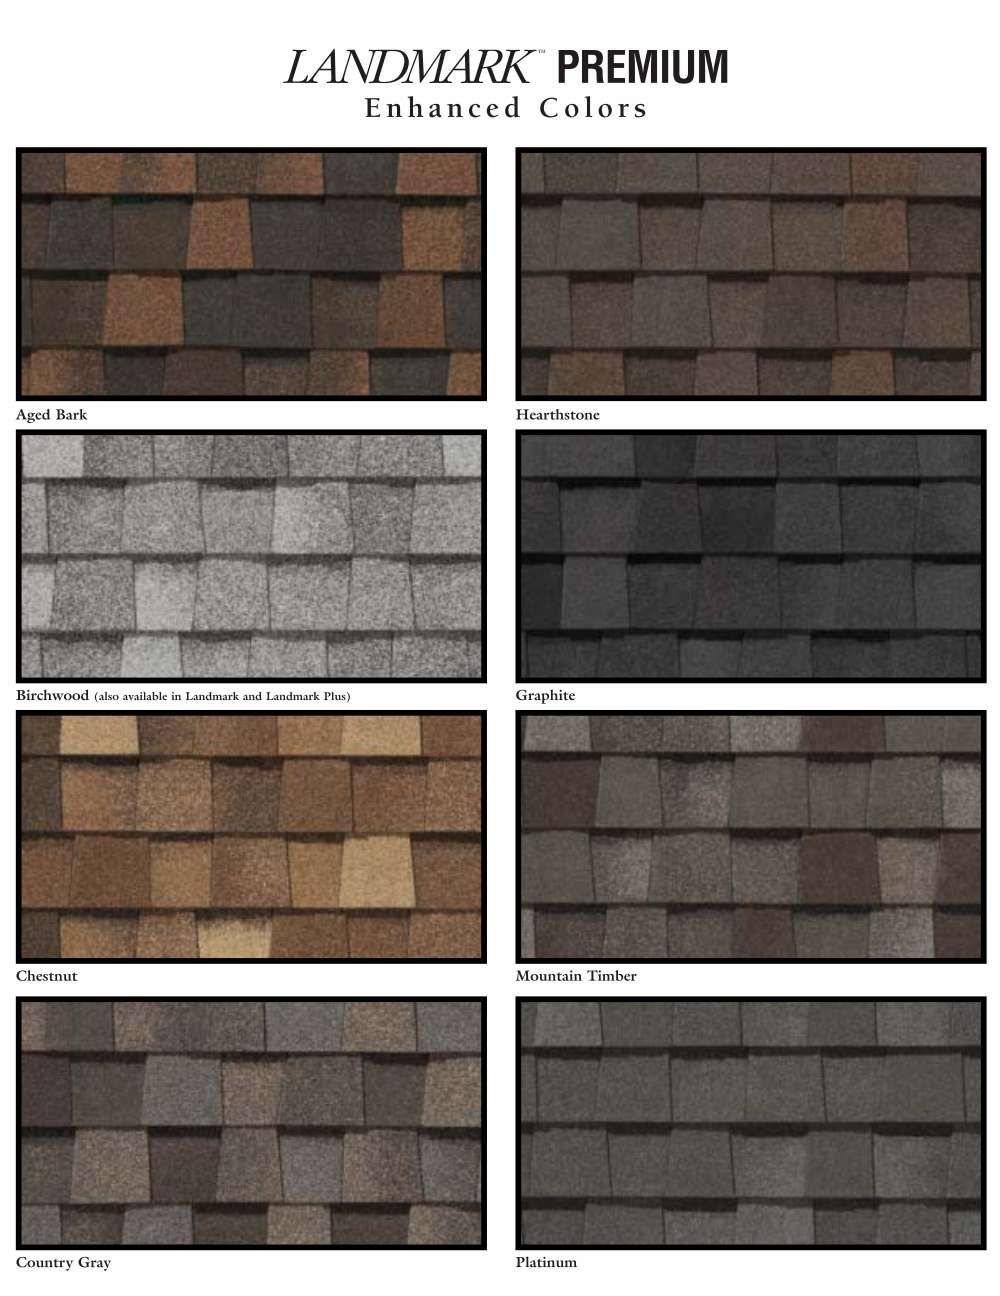 Certainteed Landmark Series Premium Shingles Southwest Region Roof Shingle Colors Architectural Shingles Roof Shingle Colors